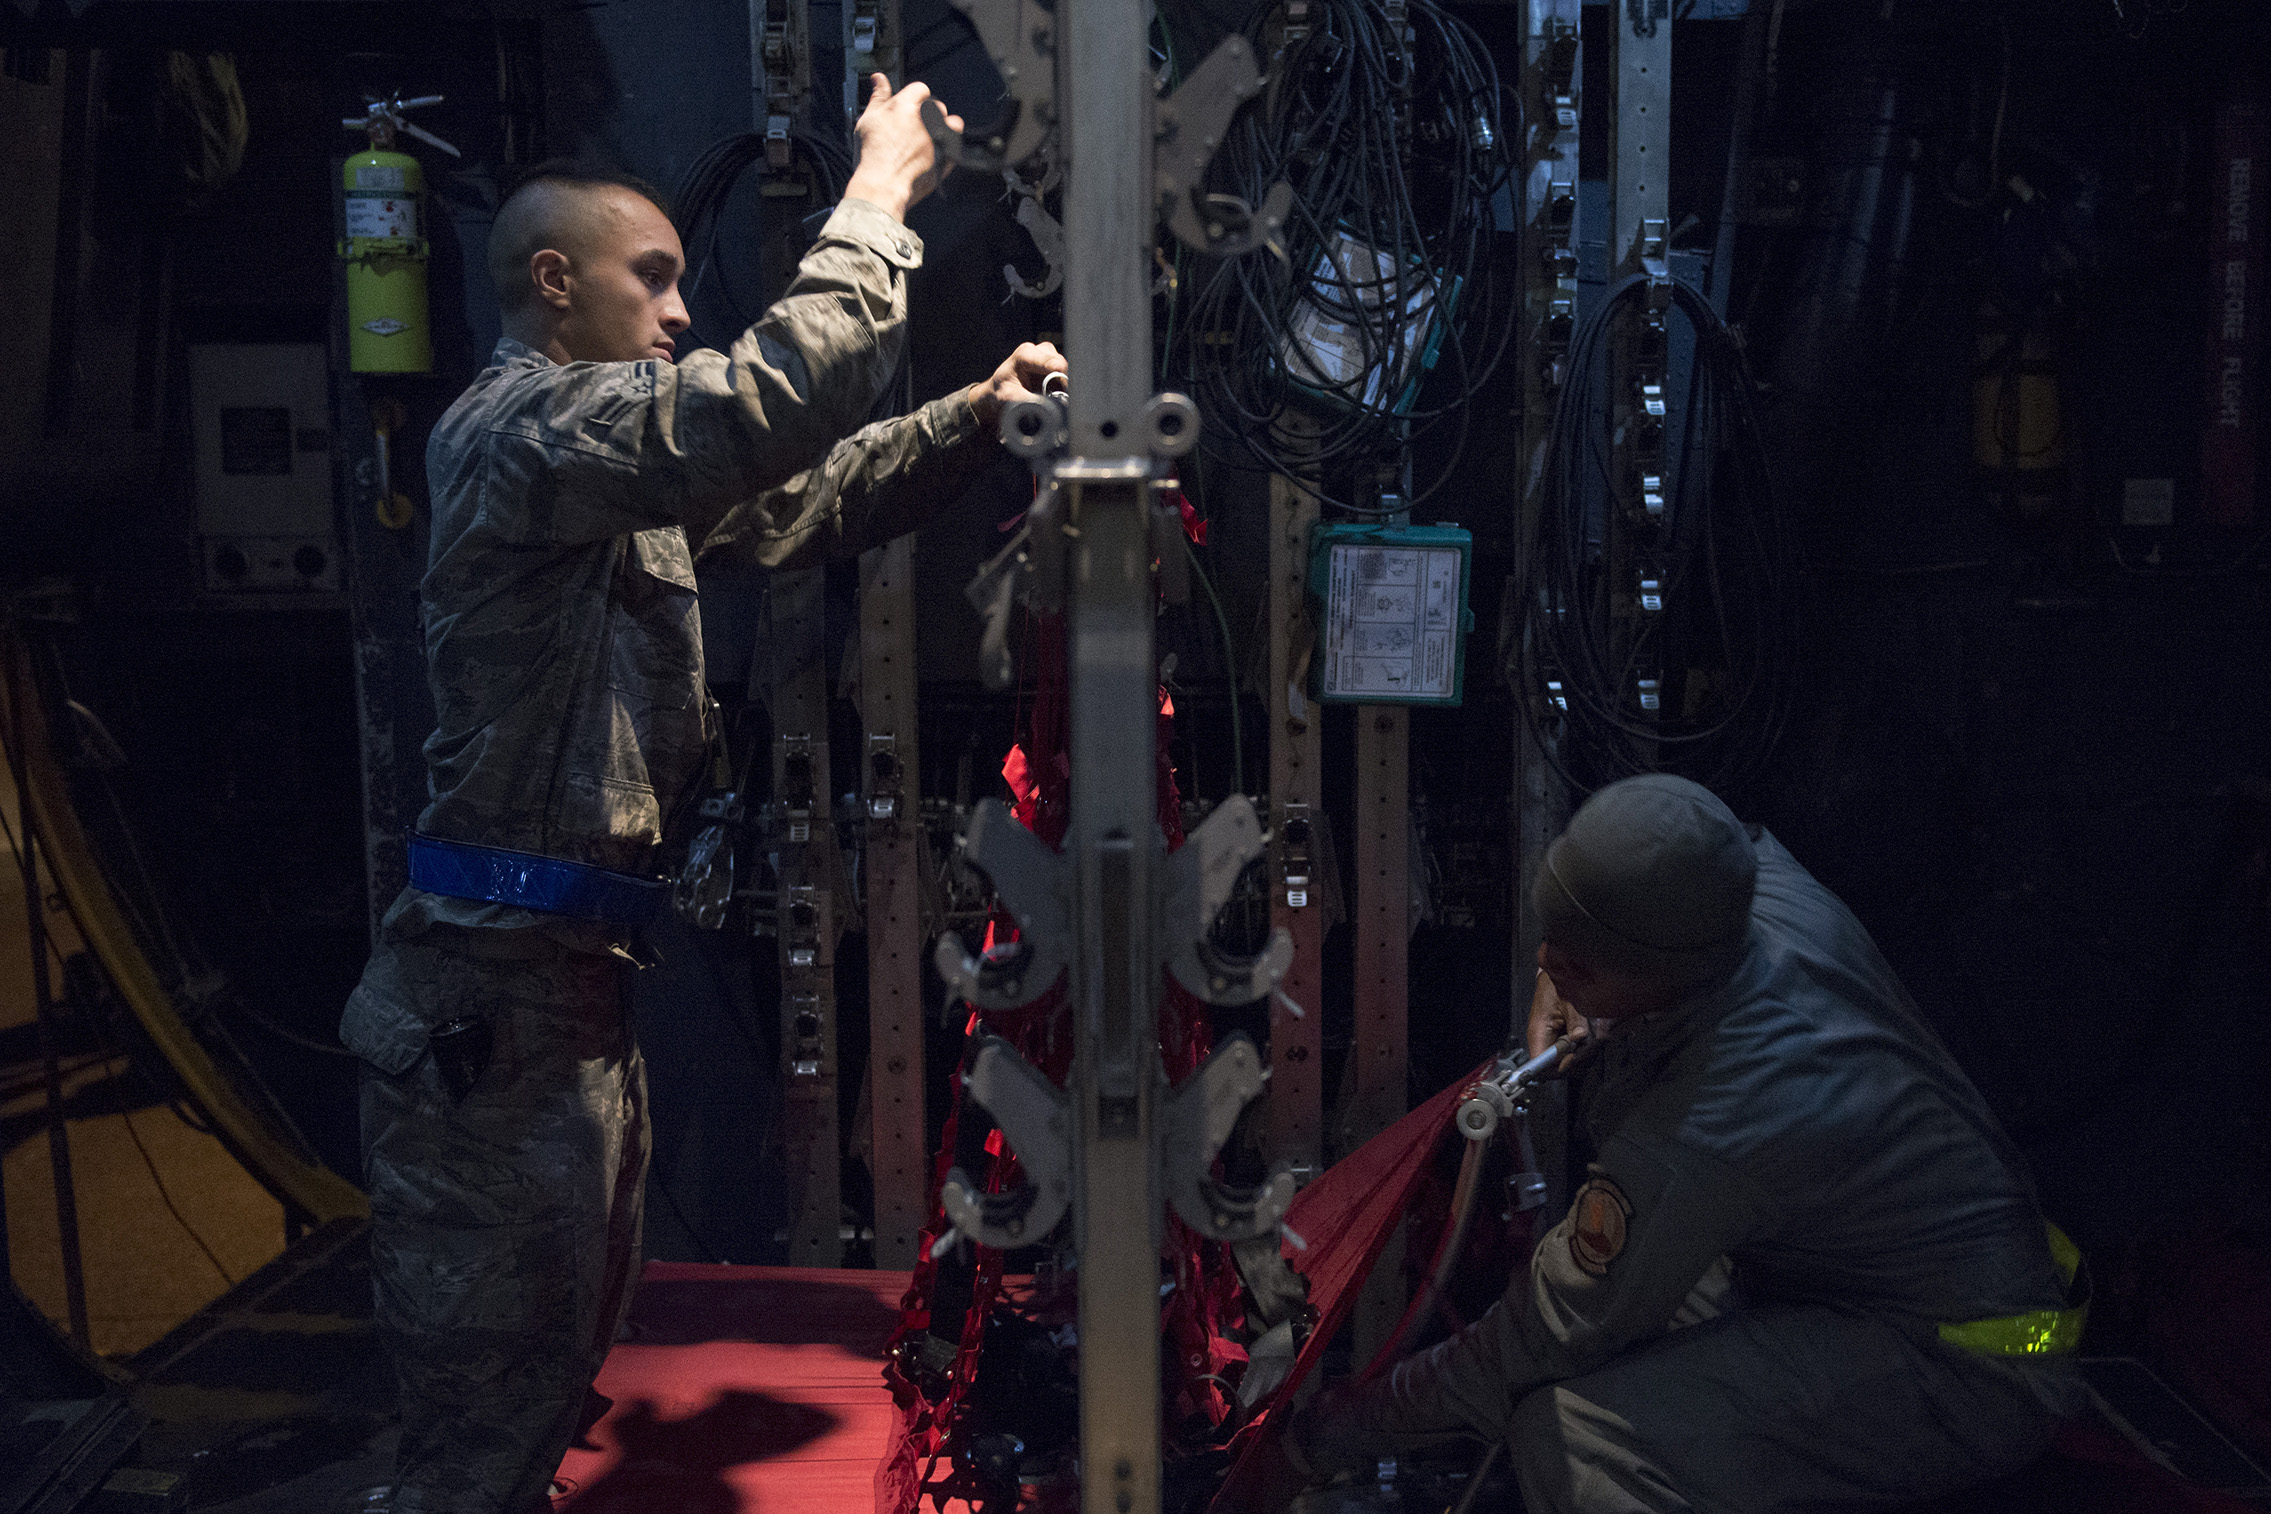 Airmen prepare seating in a C-130 Hercules during VIGILANT ACE 16 at Yokota Air Base, Japan, Nov. 2, 2015. Multiple C-130s were inspected, reconfigured and fueled in preparation of flights for VIGILANT ACE 16, a U.S.-Republic of Korea combined exercise aimed at enhancing operational and tactical level coordination through combined and joint combat training. The exercise also provides critical training for the Airmen of the 374th Airlift Wing to maintain peace and stability in Japan and the entire Indo-Asia Pacific region. (U.S. Air Force photo by Staff Sgt. Cody H. Ramirez/Released)